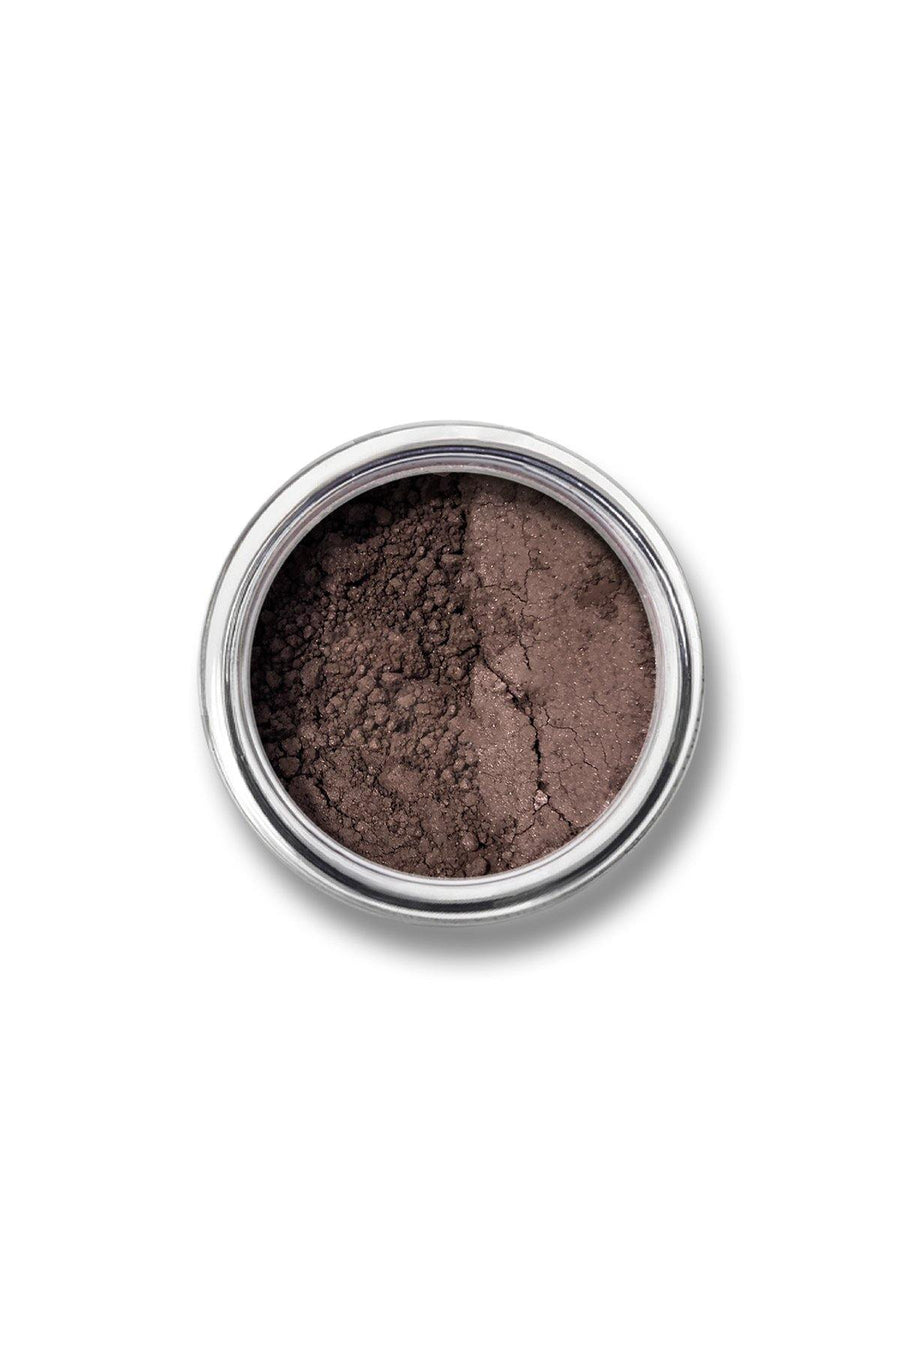 Shimmer Eyeshadow #73 - Taupe Matte - Blend Mineral Cosmetics